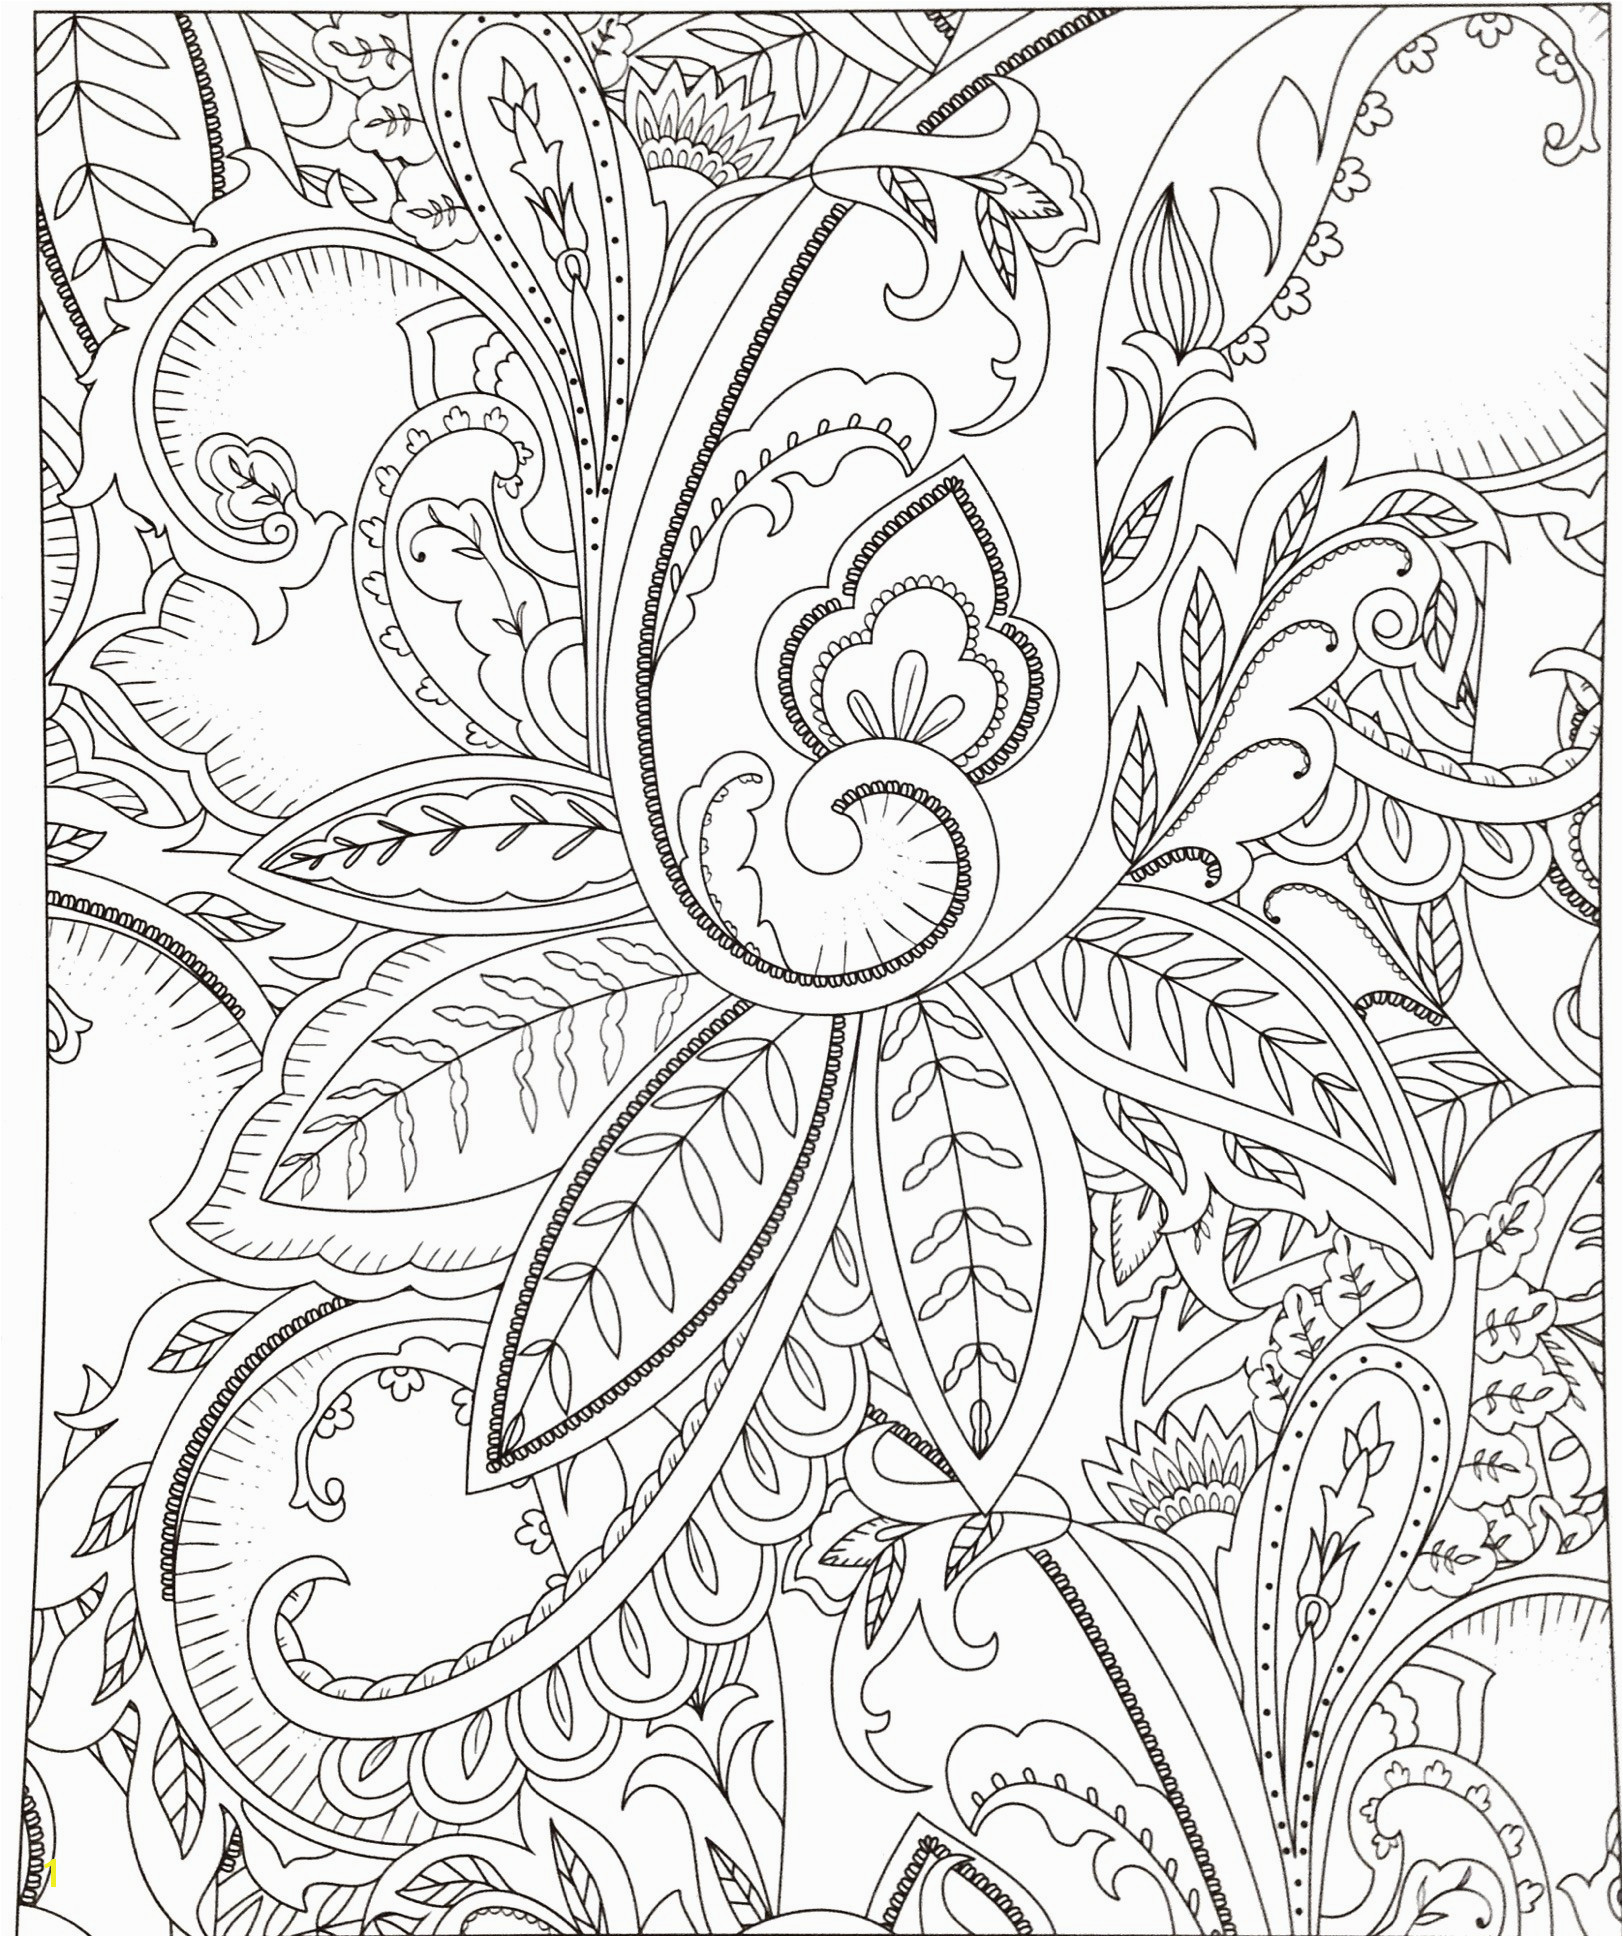 Graffiti Coloring Pages Summer Coloring Sheets Printable New Cool Coloring Printables 0d – Fun Time